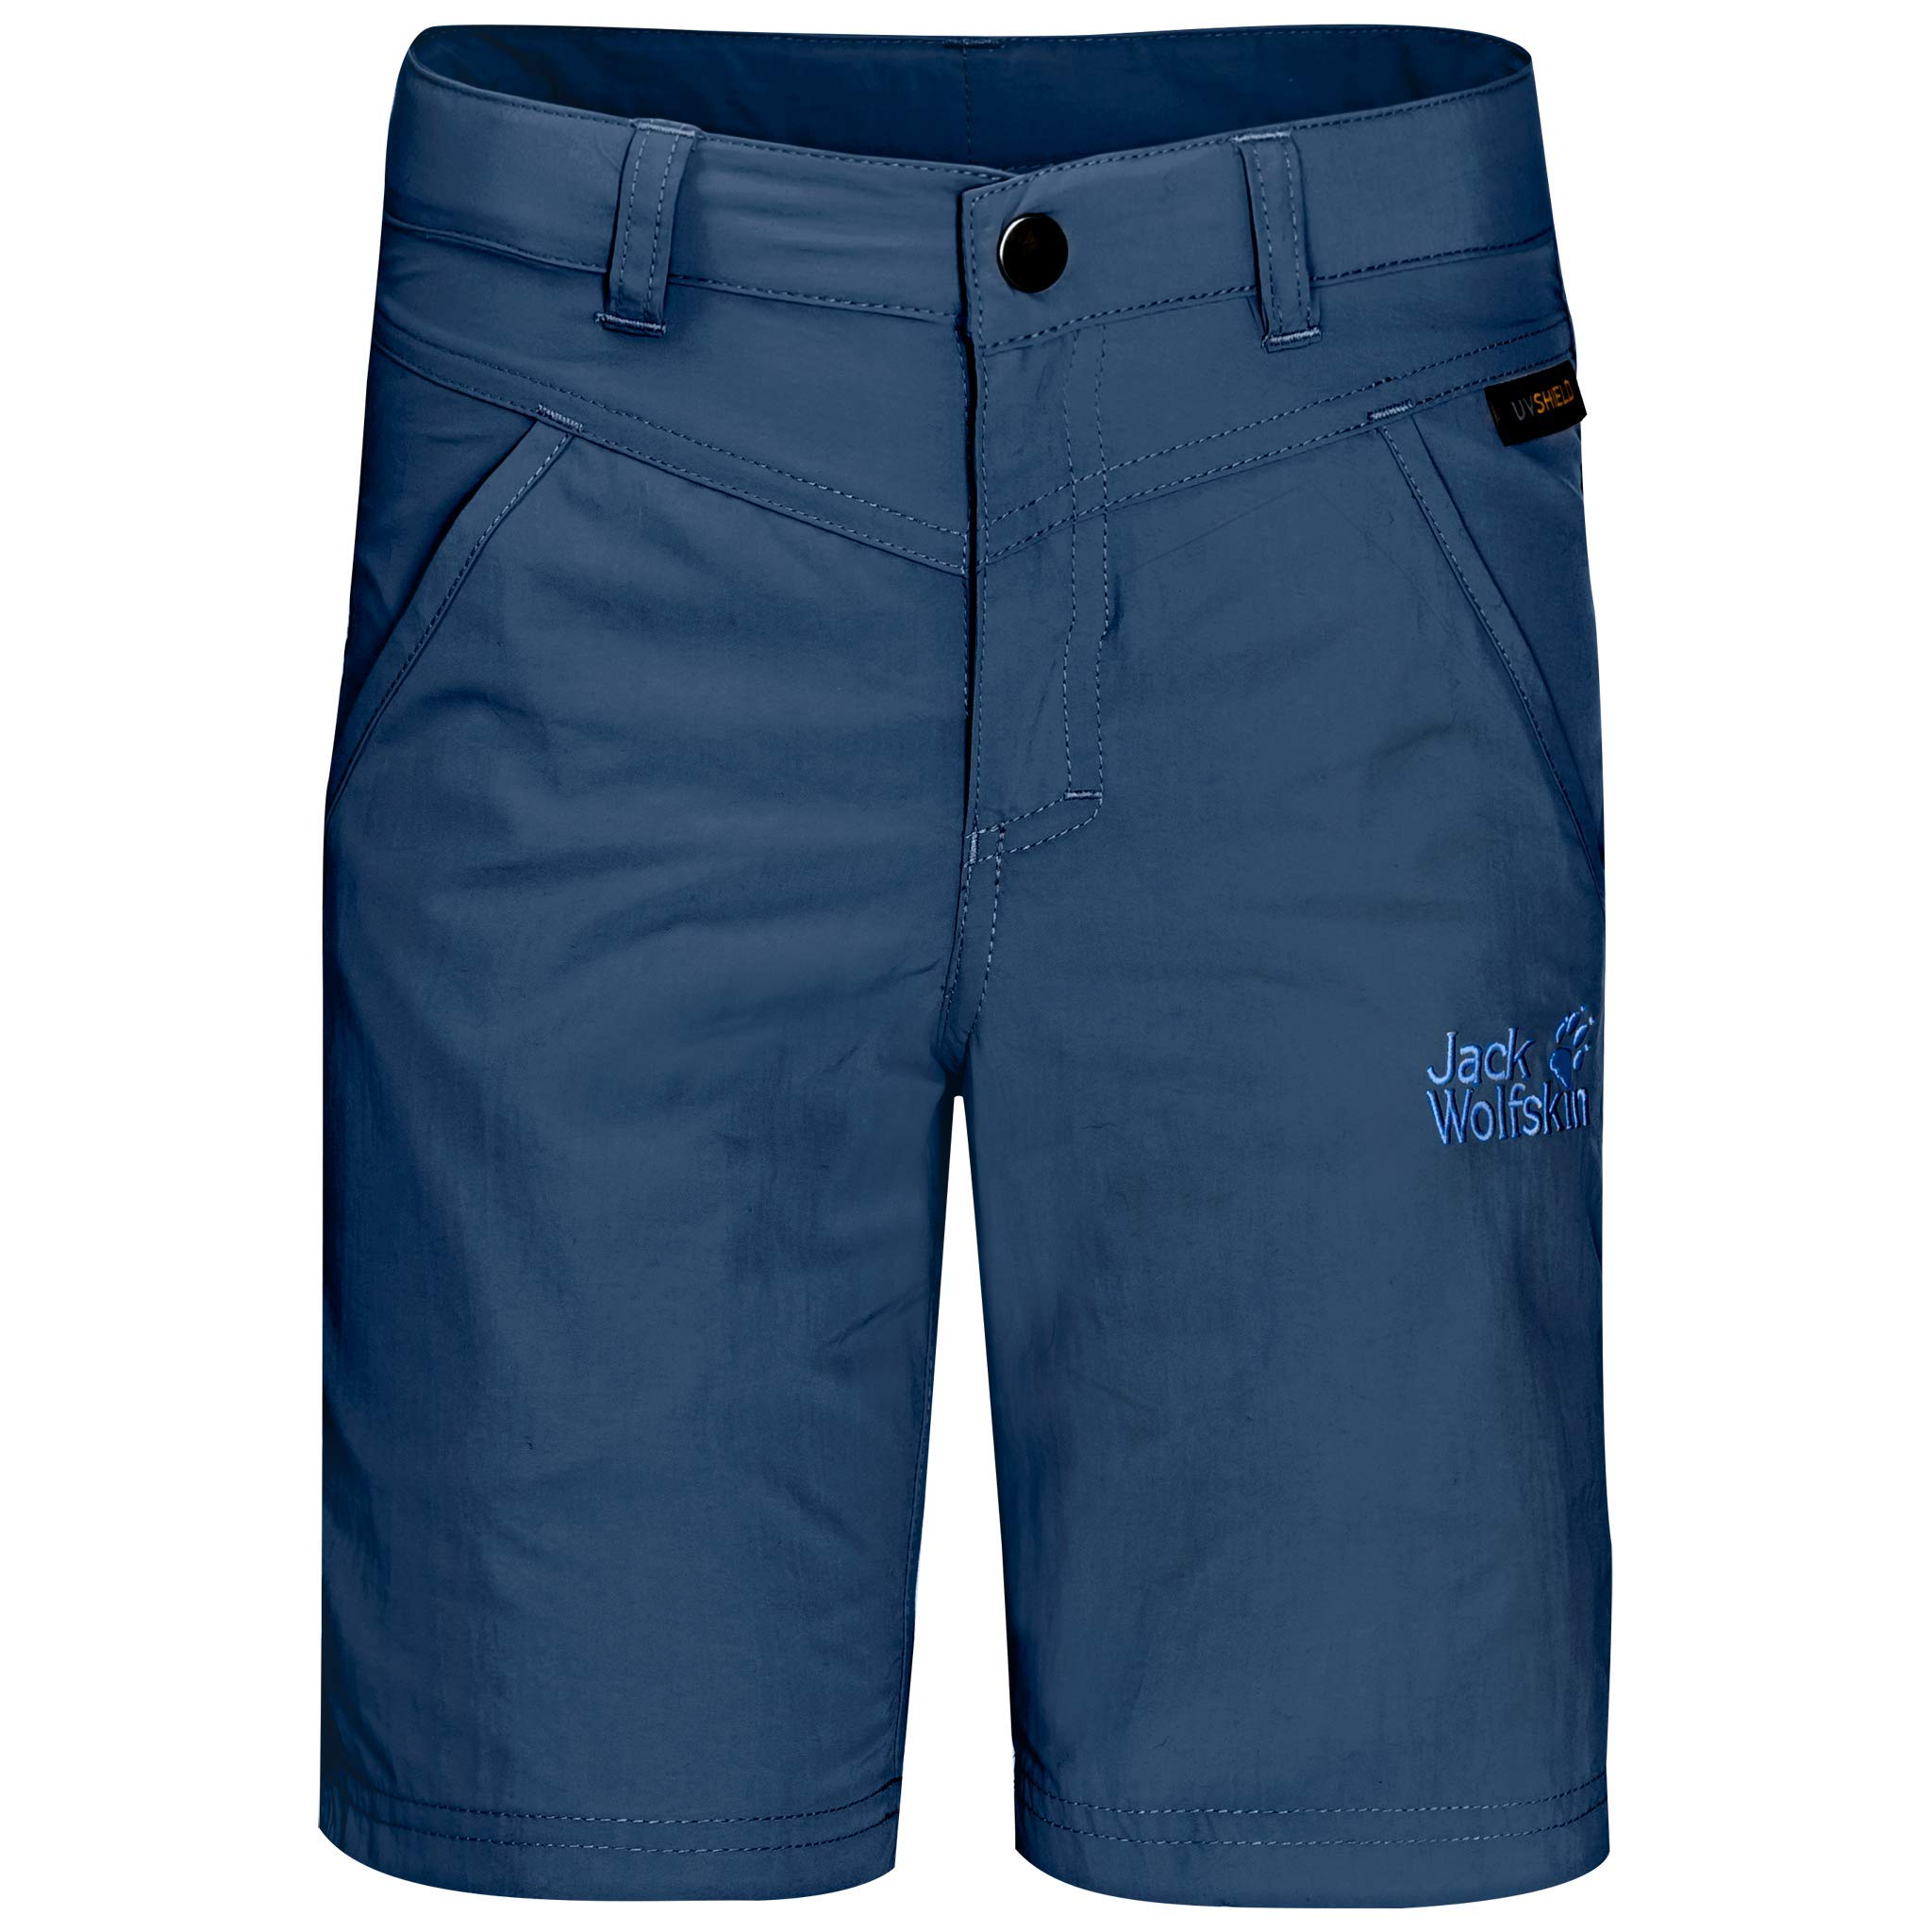 Jack Wolfskin Sun Shorts, Ocean Wave, Size 164 (13-14 Years Old) by Jack Wolfskin